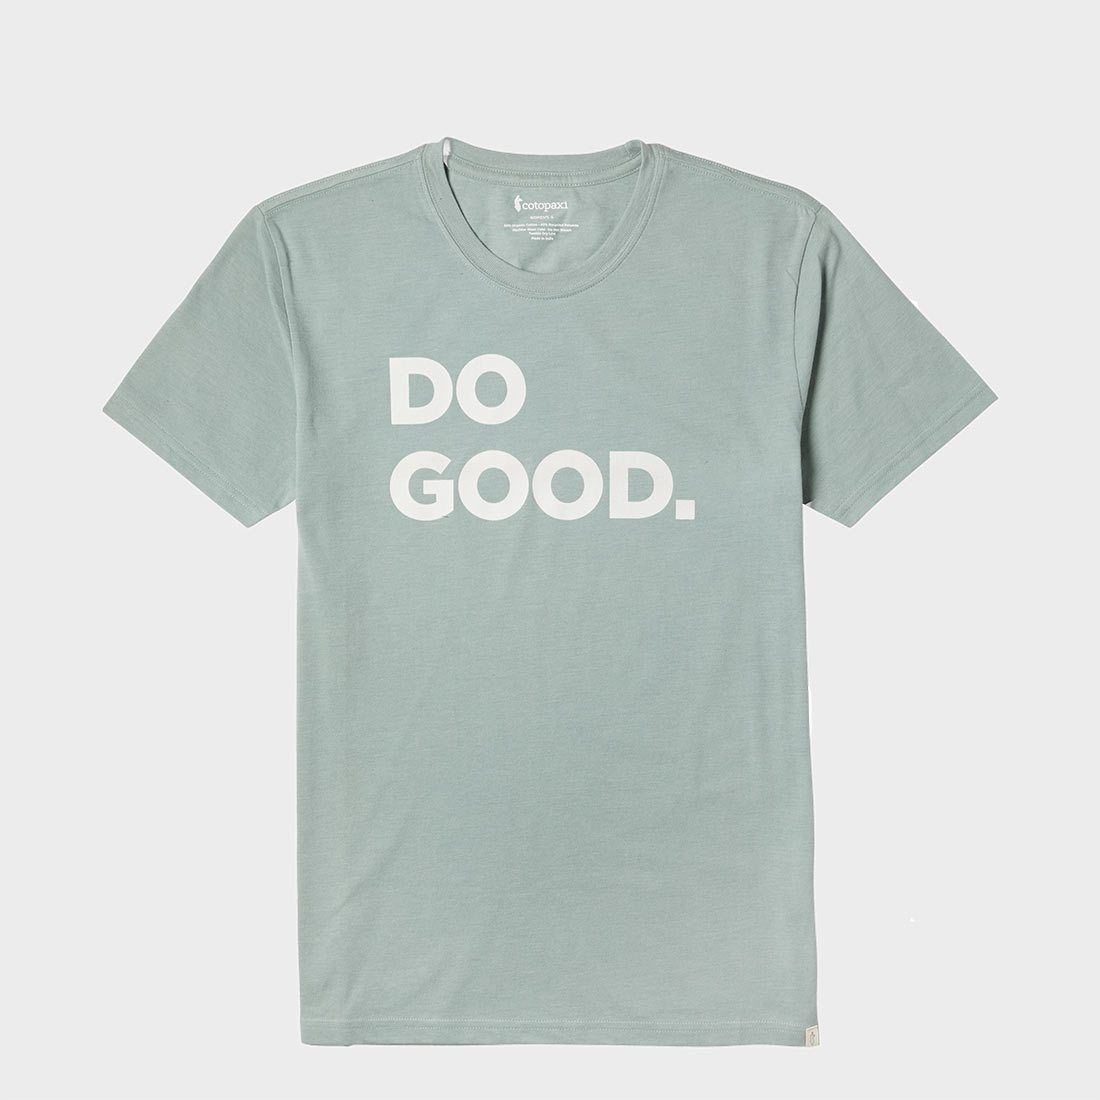 Cotopaxi Women's Do Good T-Shirt Sage